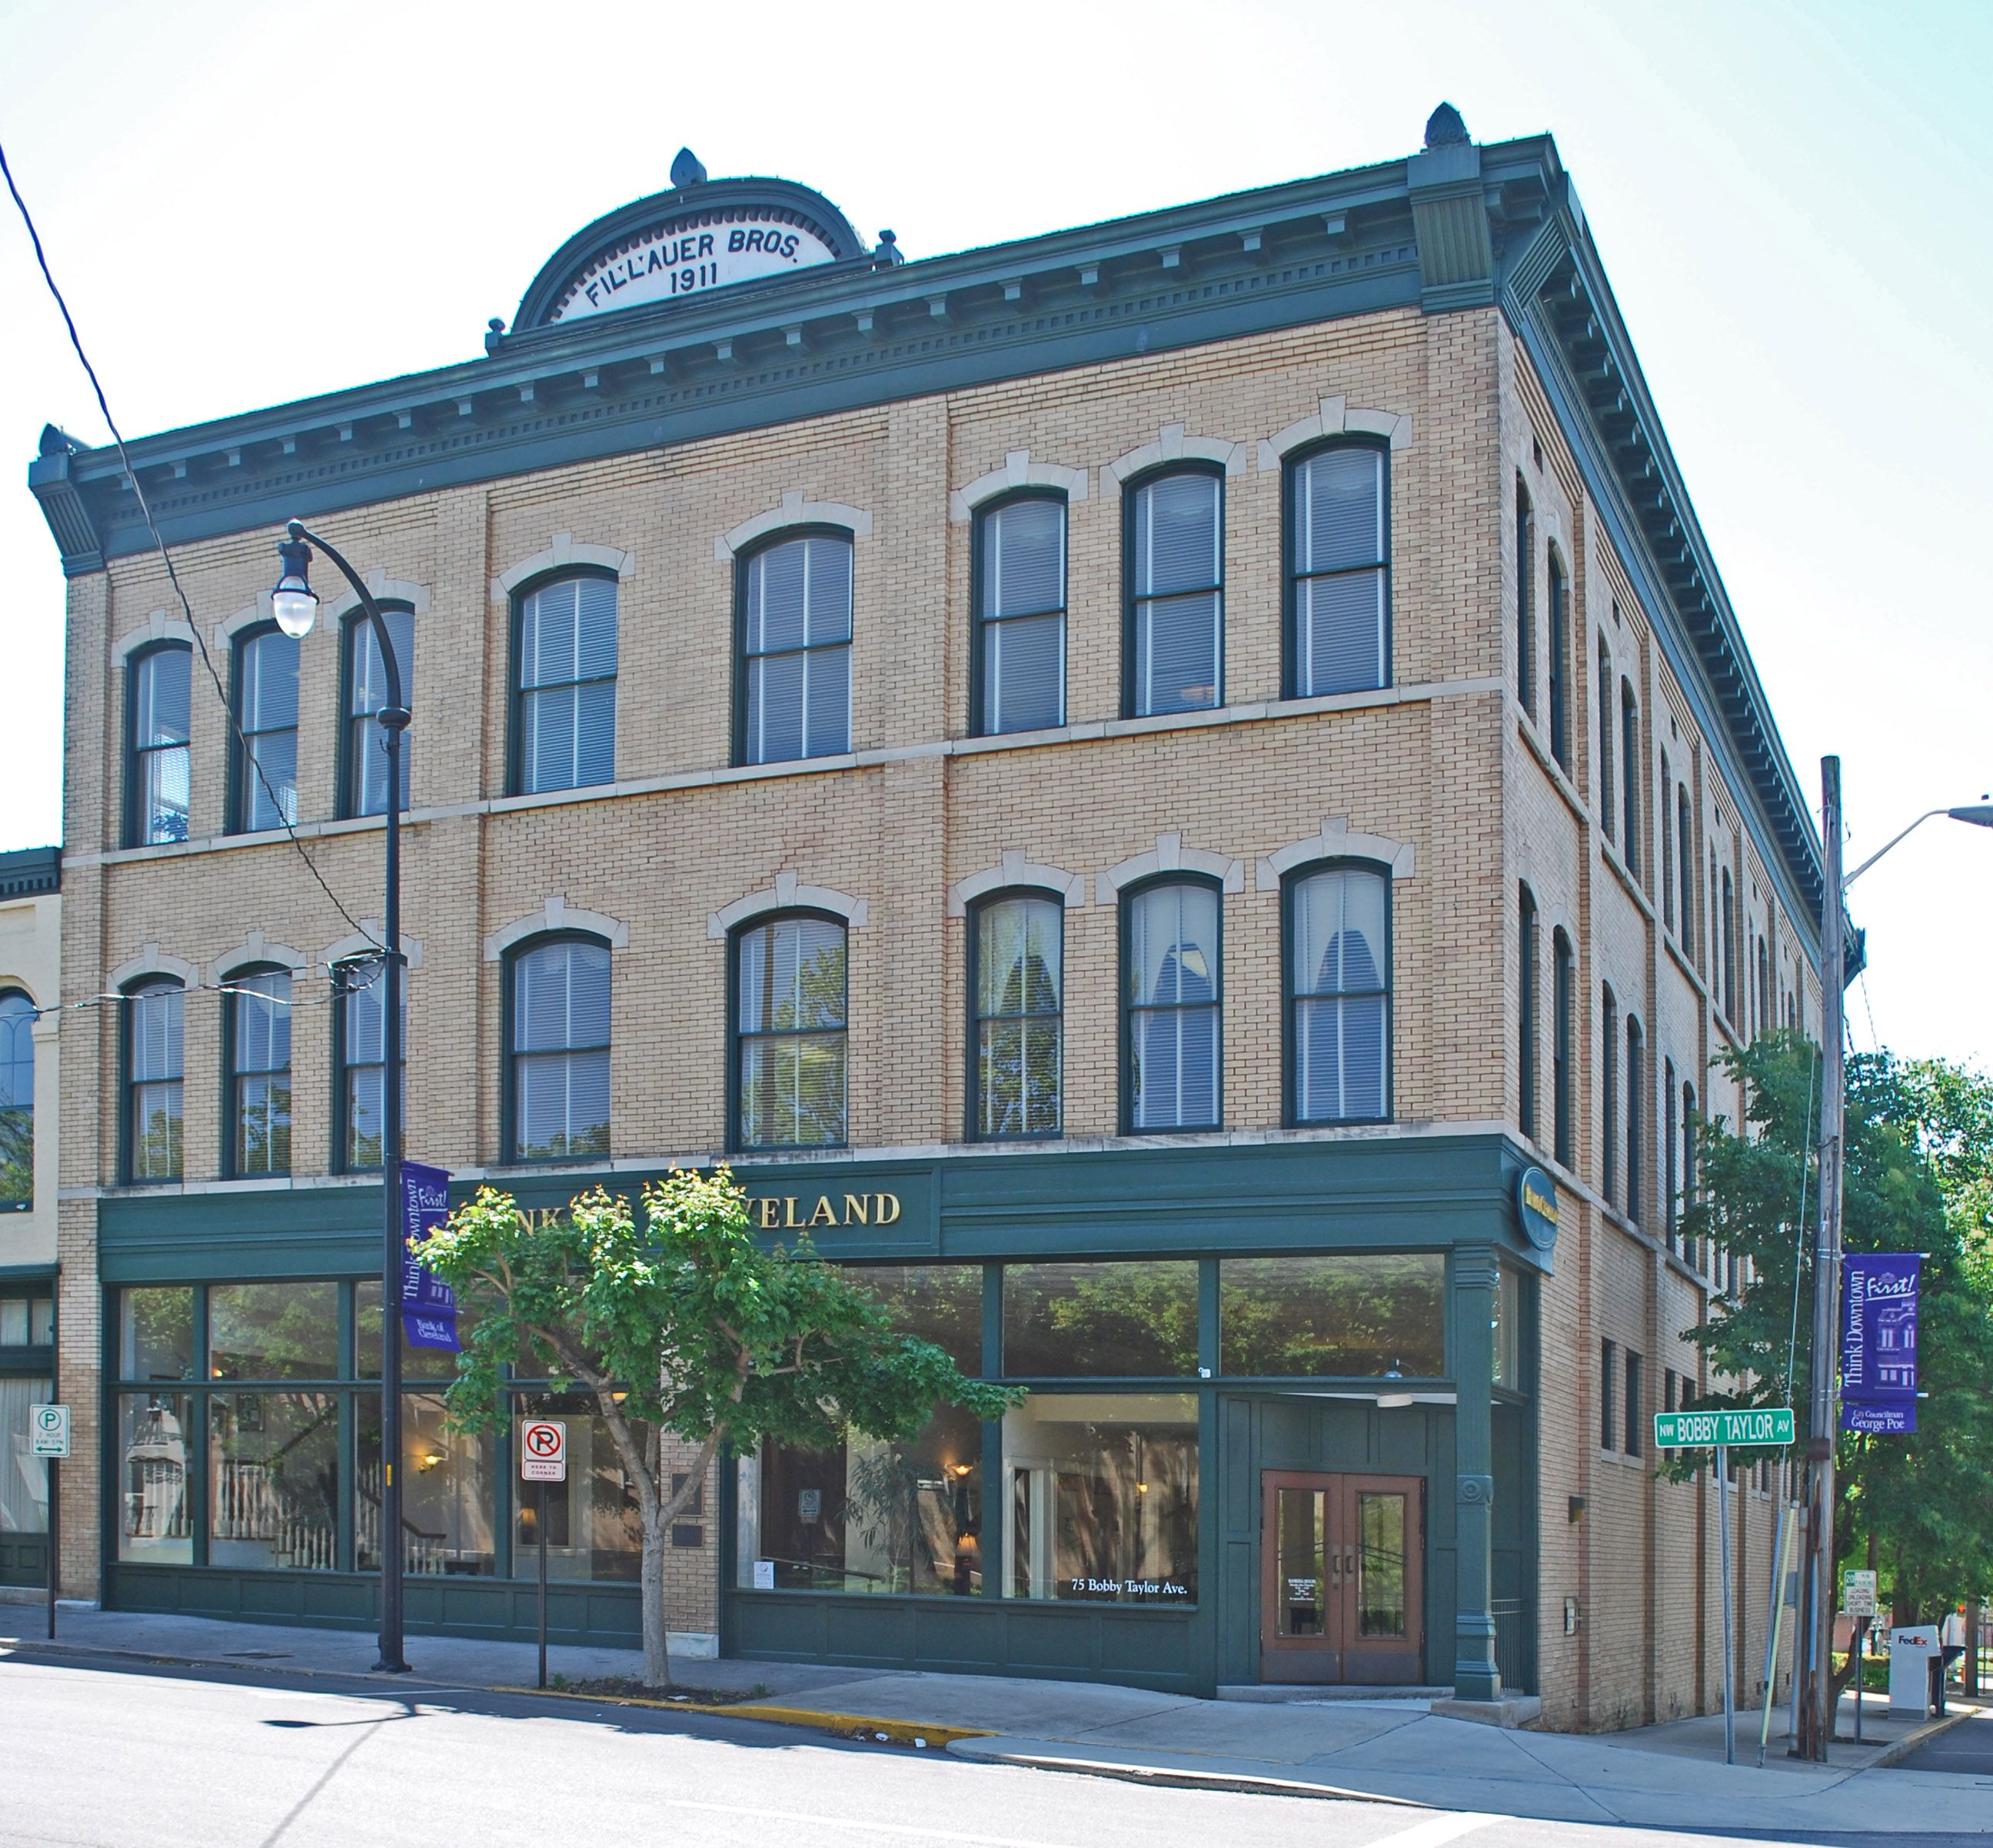 Bank of cleveland fillauer brothers building with